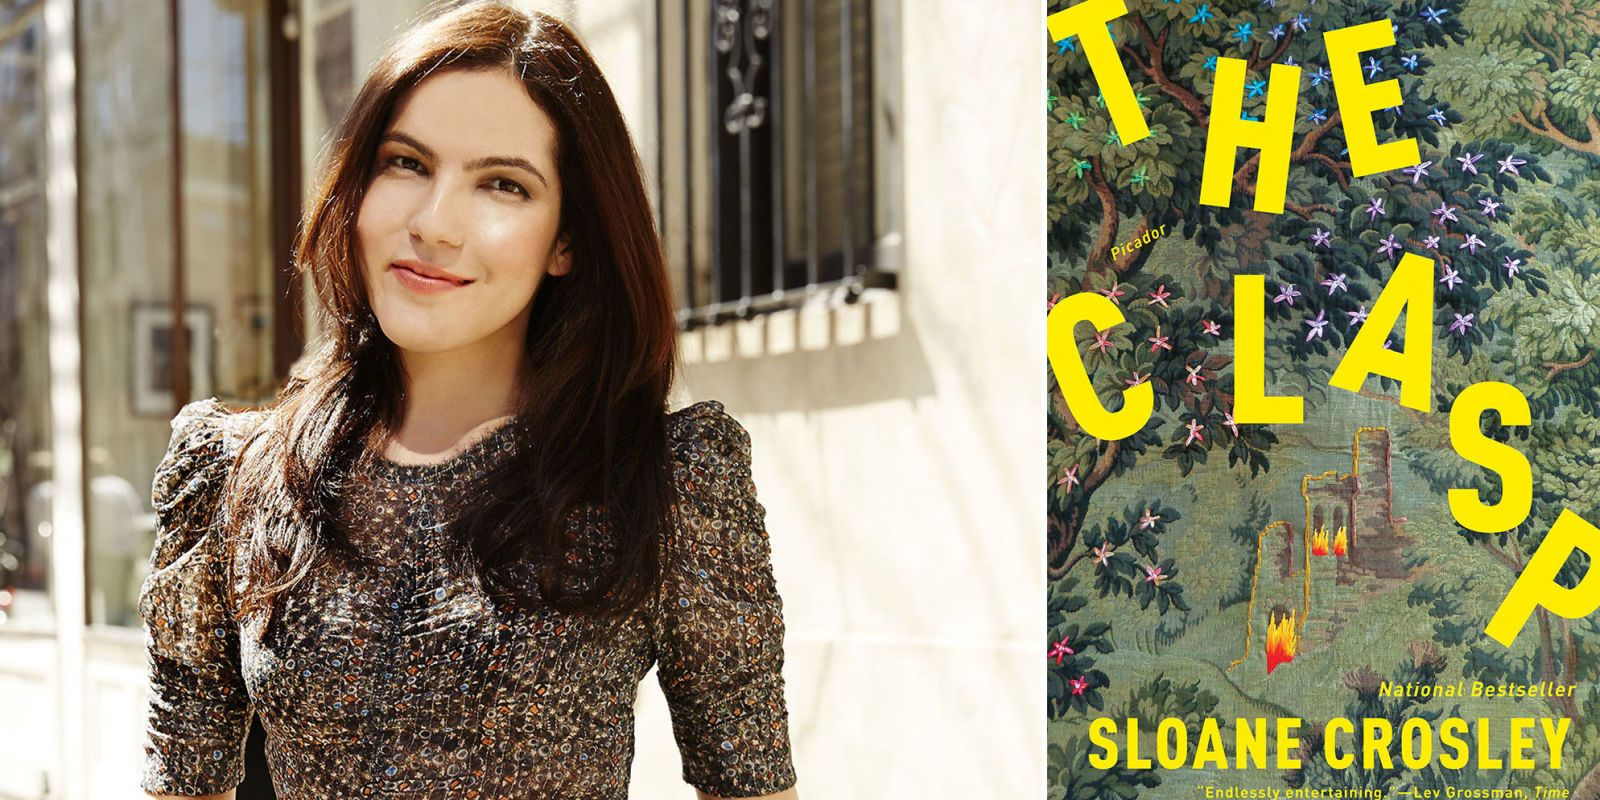 Best-Selling Author Sloane Crosley Shares Her Best Advice for Aspiring Young Writers